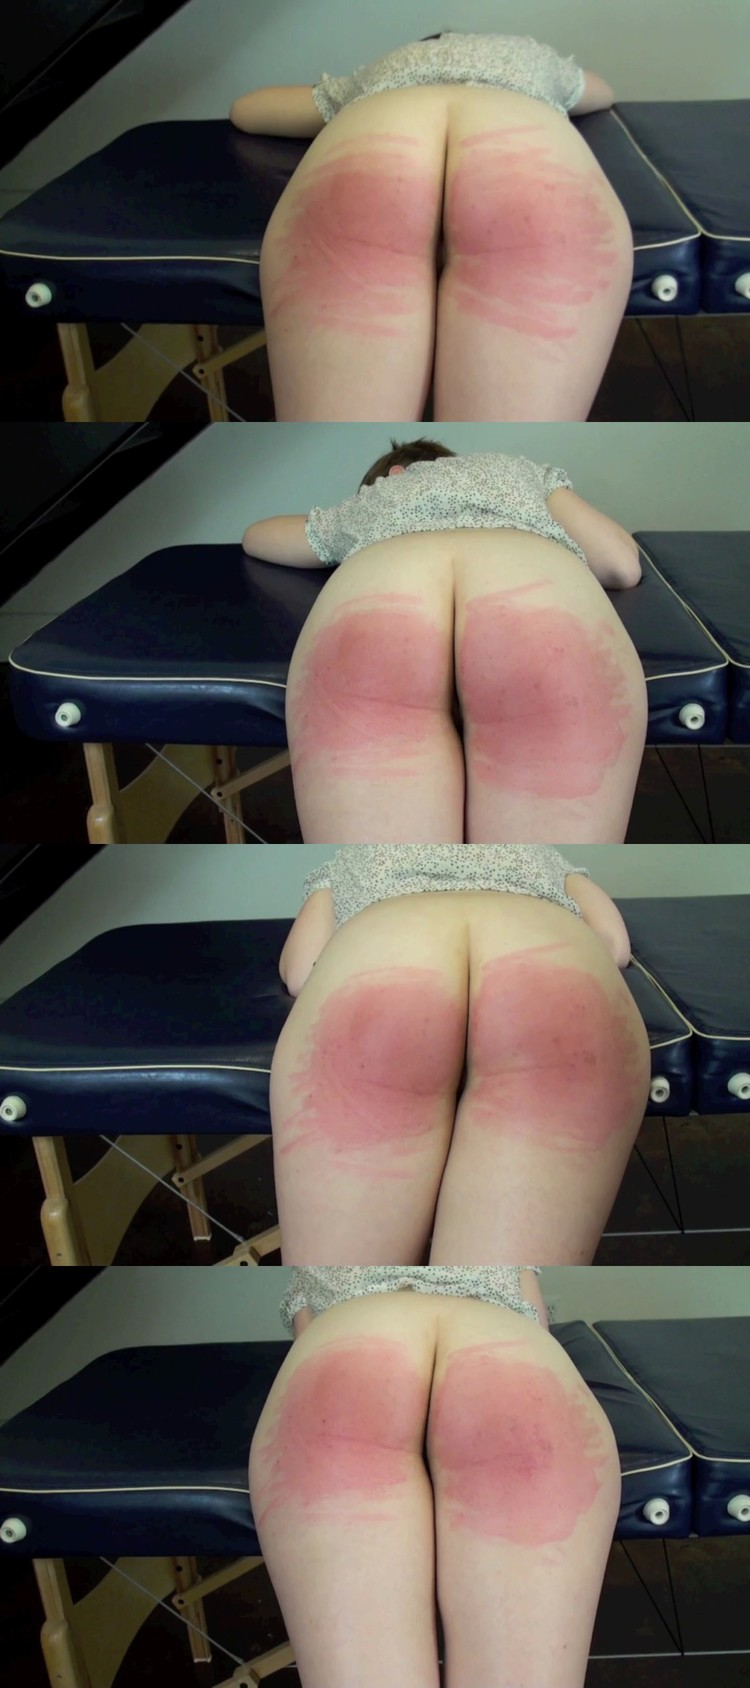 My Spanked Roommate nude pics, images and galleries